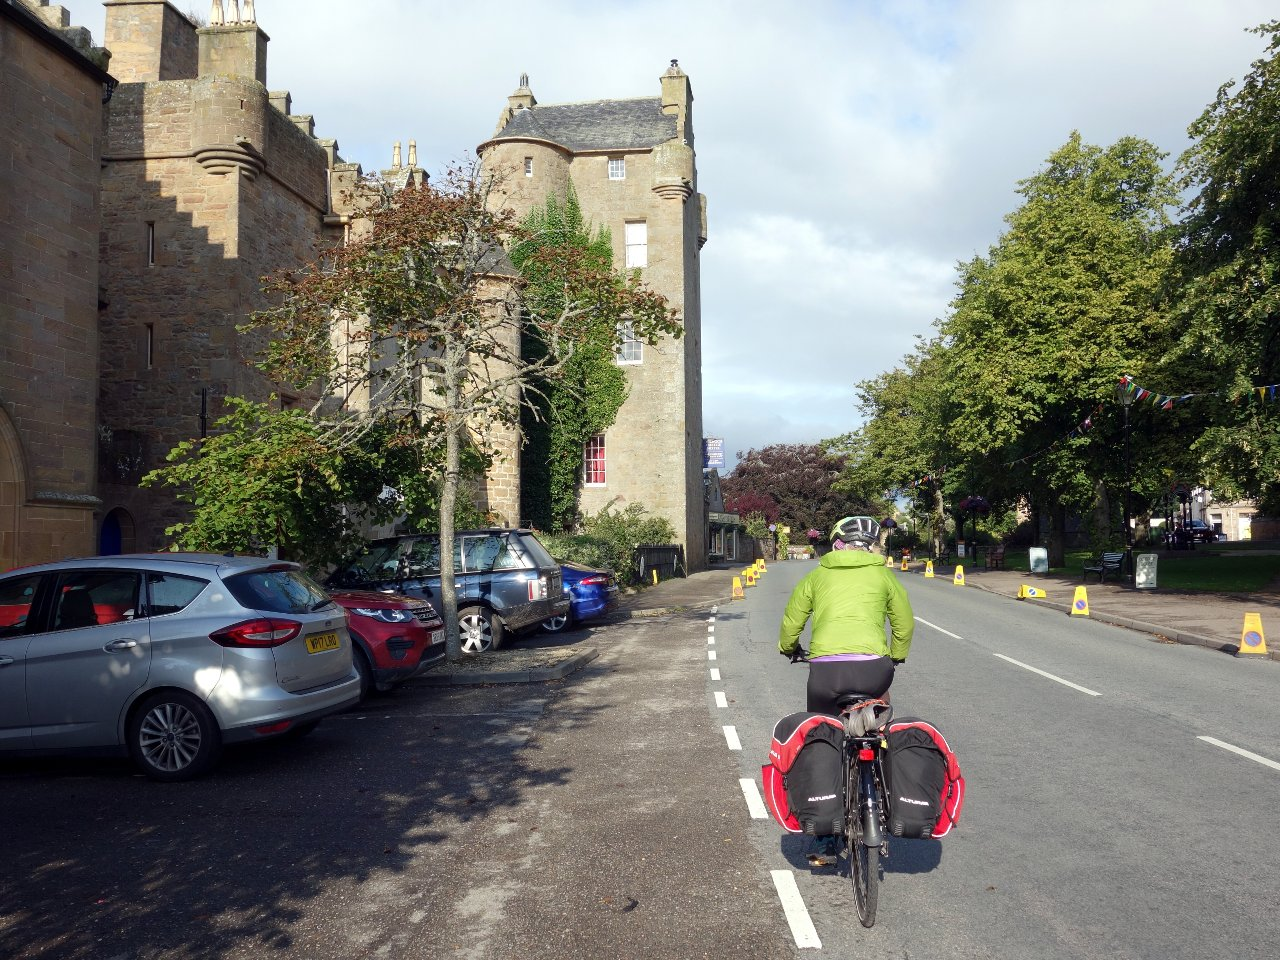 Dornoch was a pleasant village with a hotel disguised as a castle, or was it the other way round?